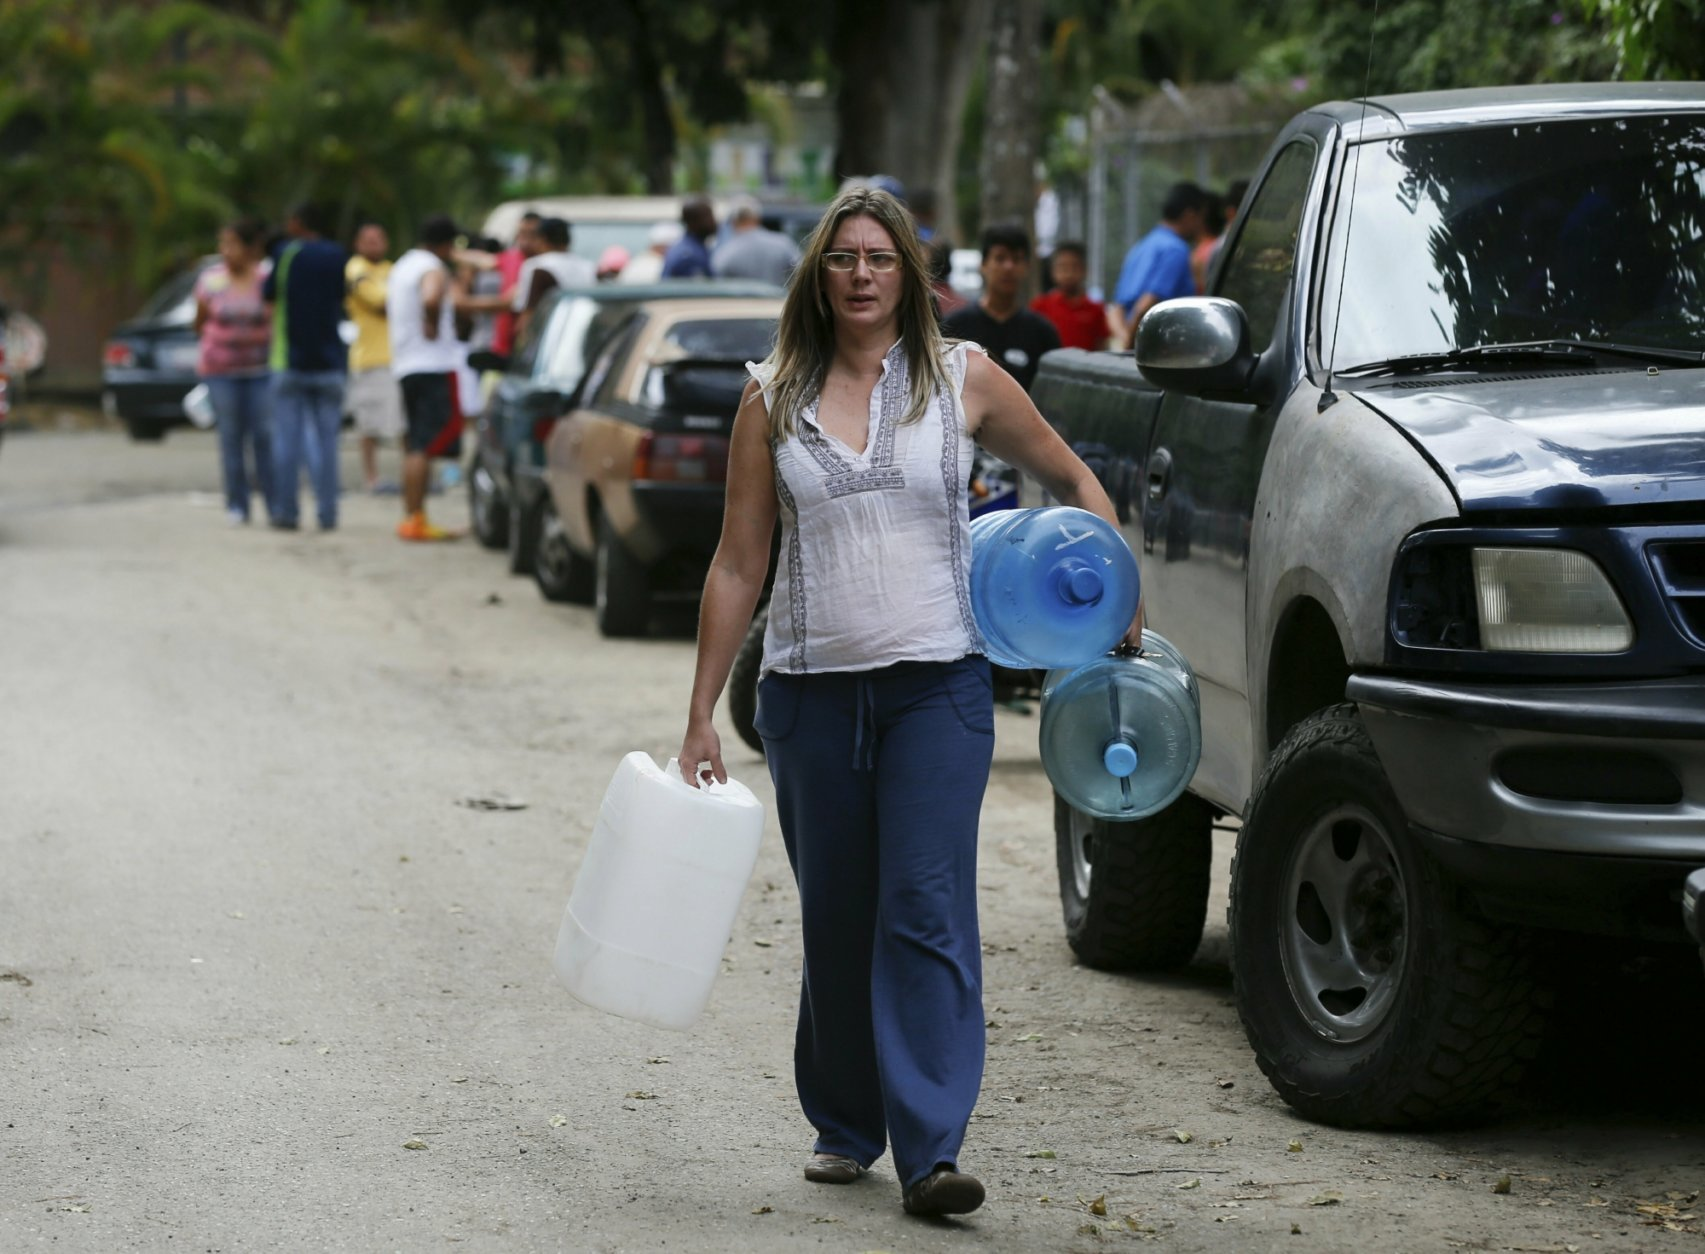 A woman carries empty containers to fill with water as people gather at a public fountain during rolling blackouts, which affects running water in people's homes, in Caracas, Venezuela, Monday, March 11, 2019. The blackout has intensified the toxic political climate, with opposition leader Juan Guaido blaming alleged government corruption and mismanagement and President Nicolas Maduro accusing his U.S.-backed adversary of sabotaging the national grid. (AP Photo/Fernando Llano)